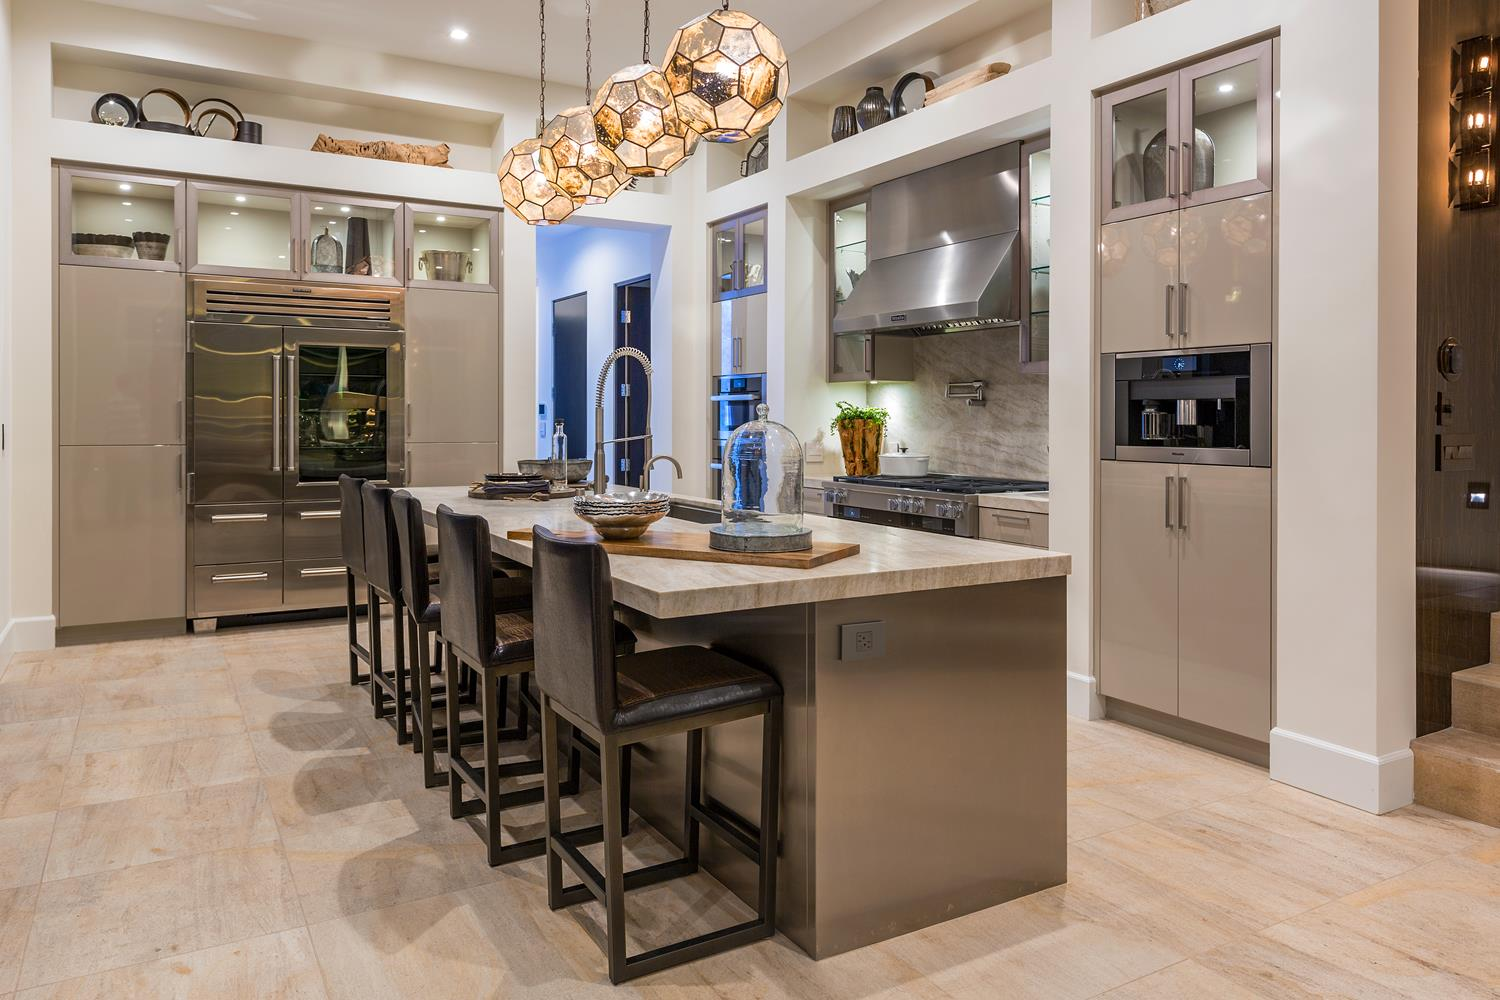 Kitchen | 5900 Village Drive | Jewel at Playa Vista in Los Angeles, CA | Brookfield Residential